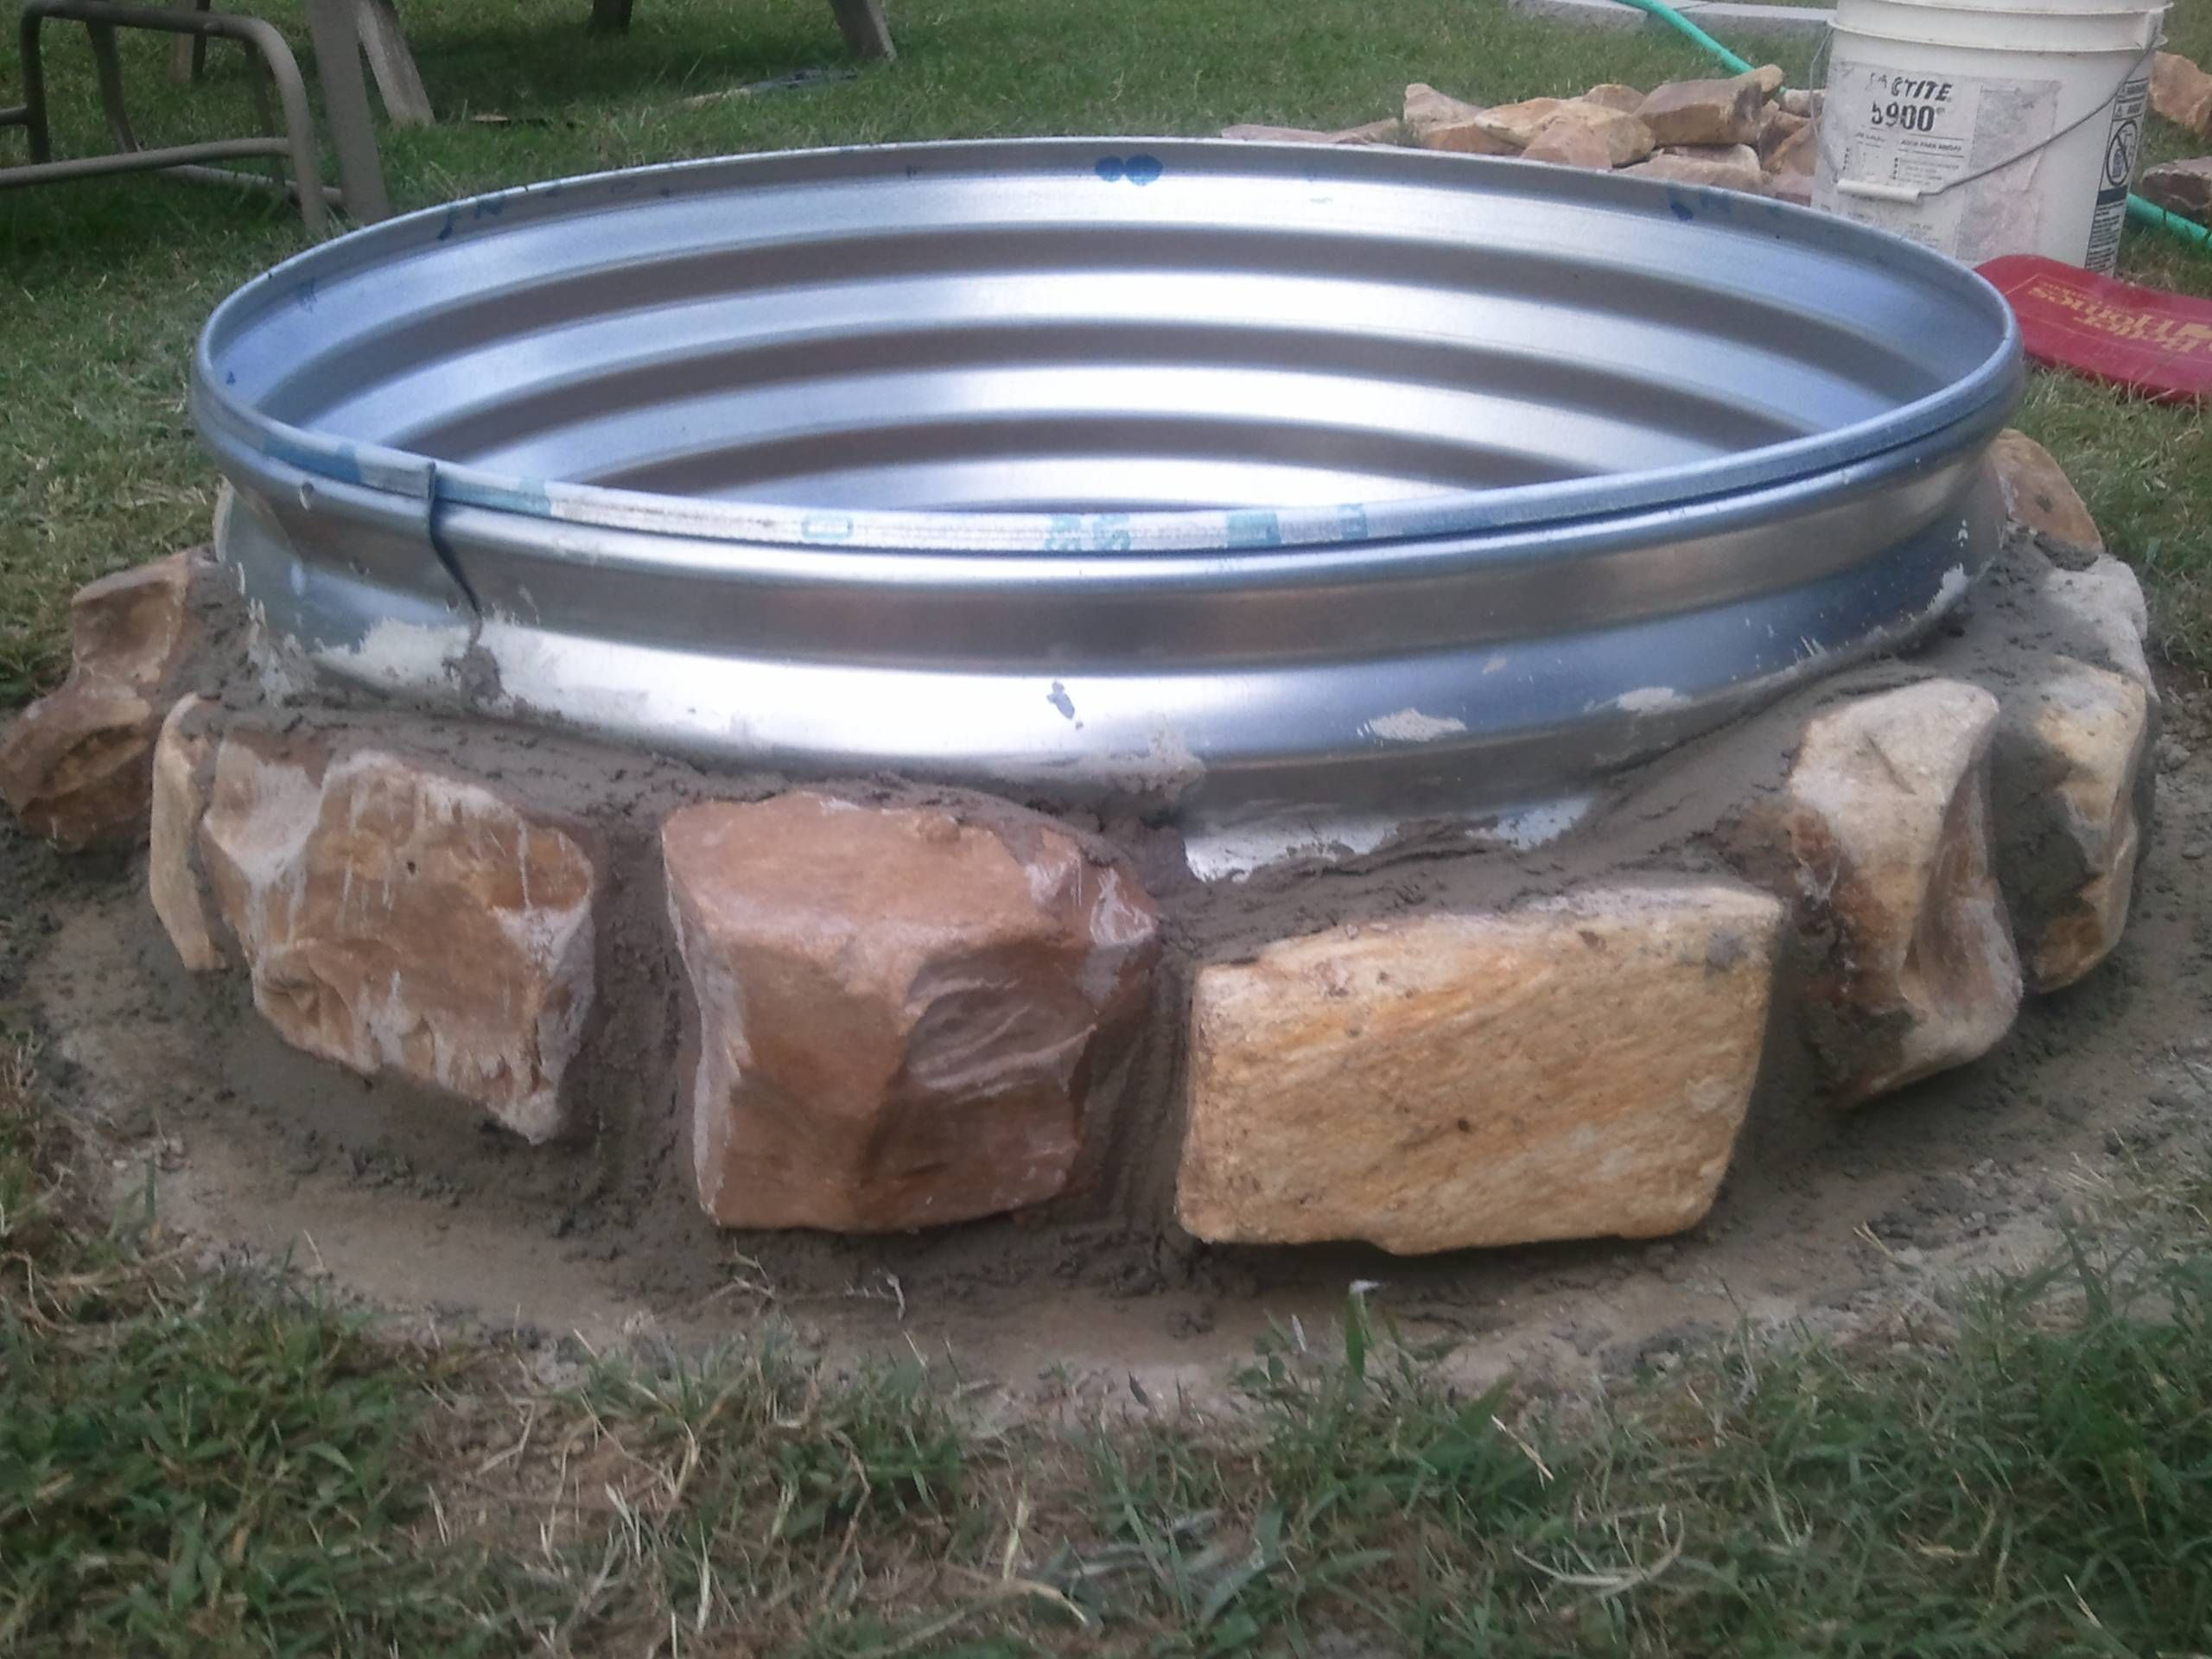 DIY FirePit for $20: Buy a 15 gallon wash pail from Lowe's. They ...